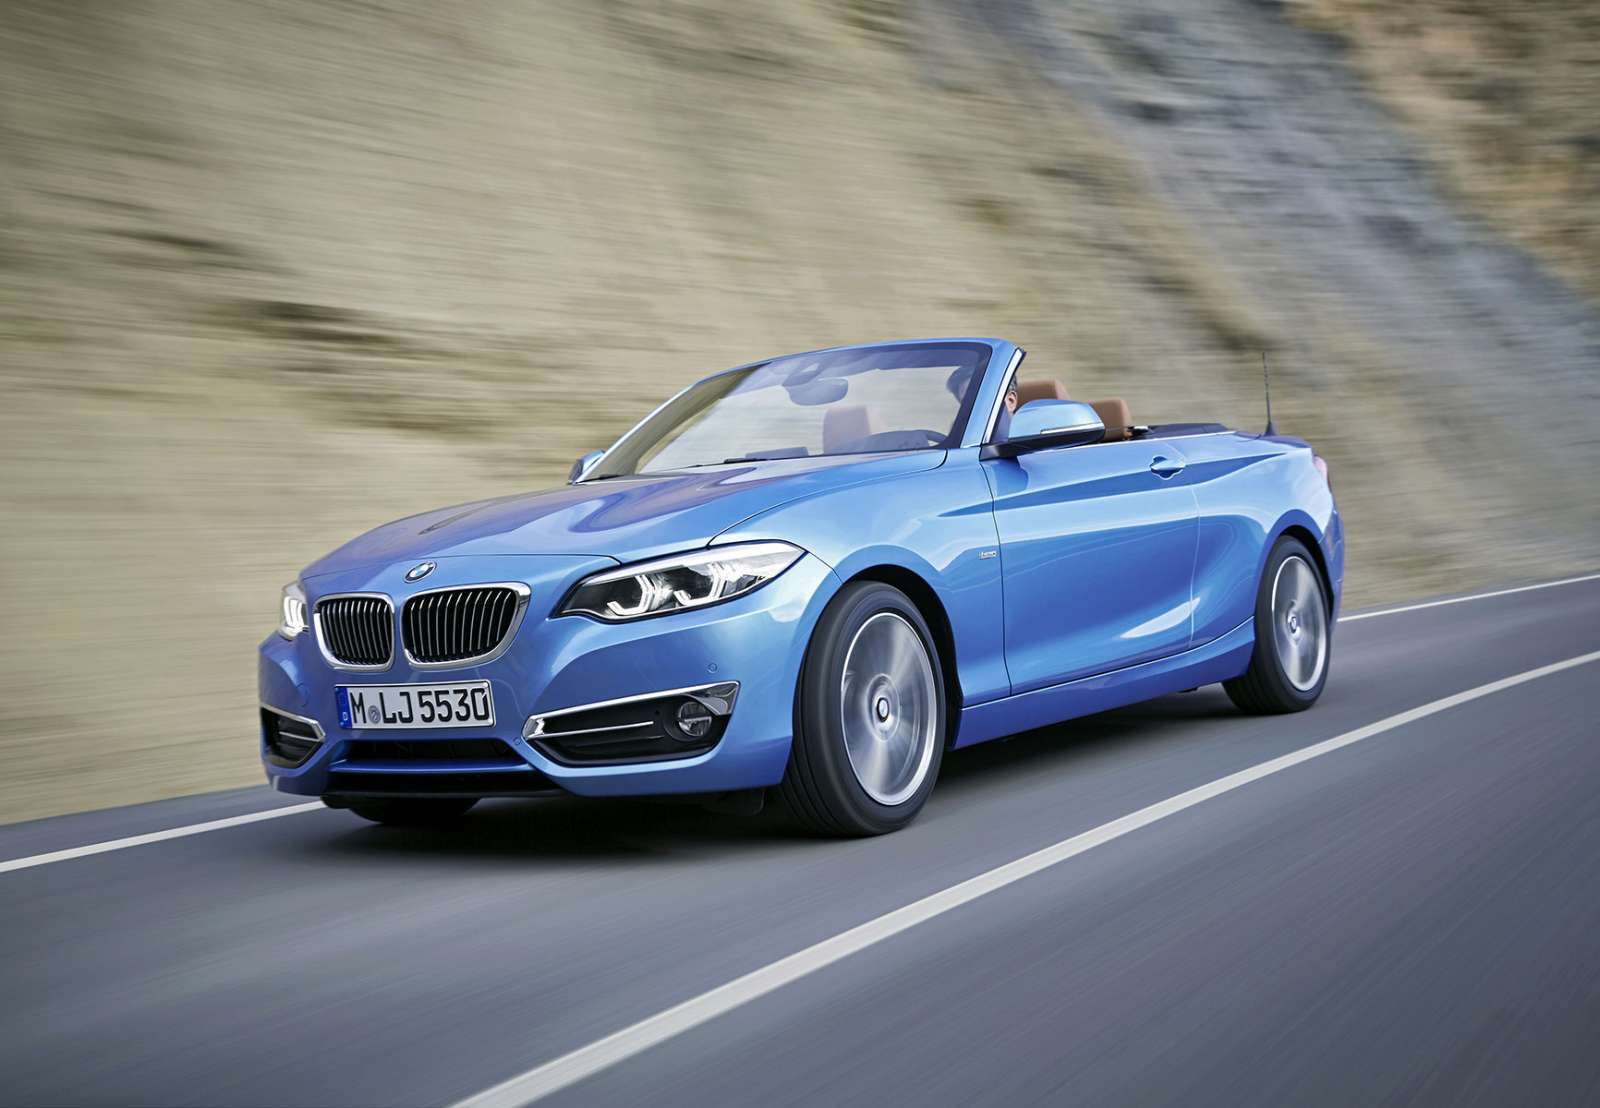 Remplacement Capote Bmw Serie 2 Cabriolet F23 Sellerie Minot